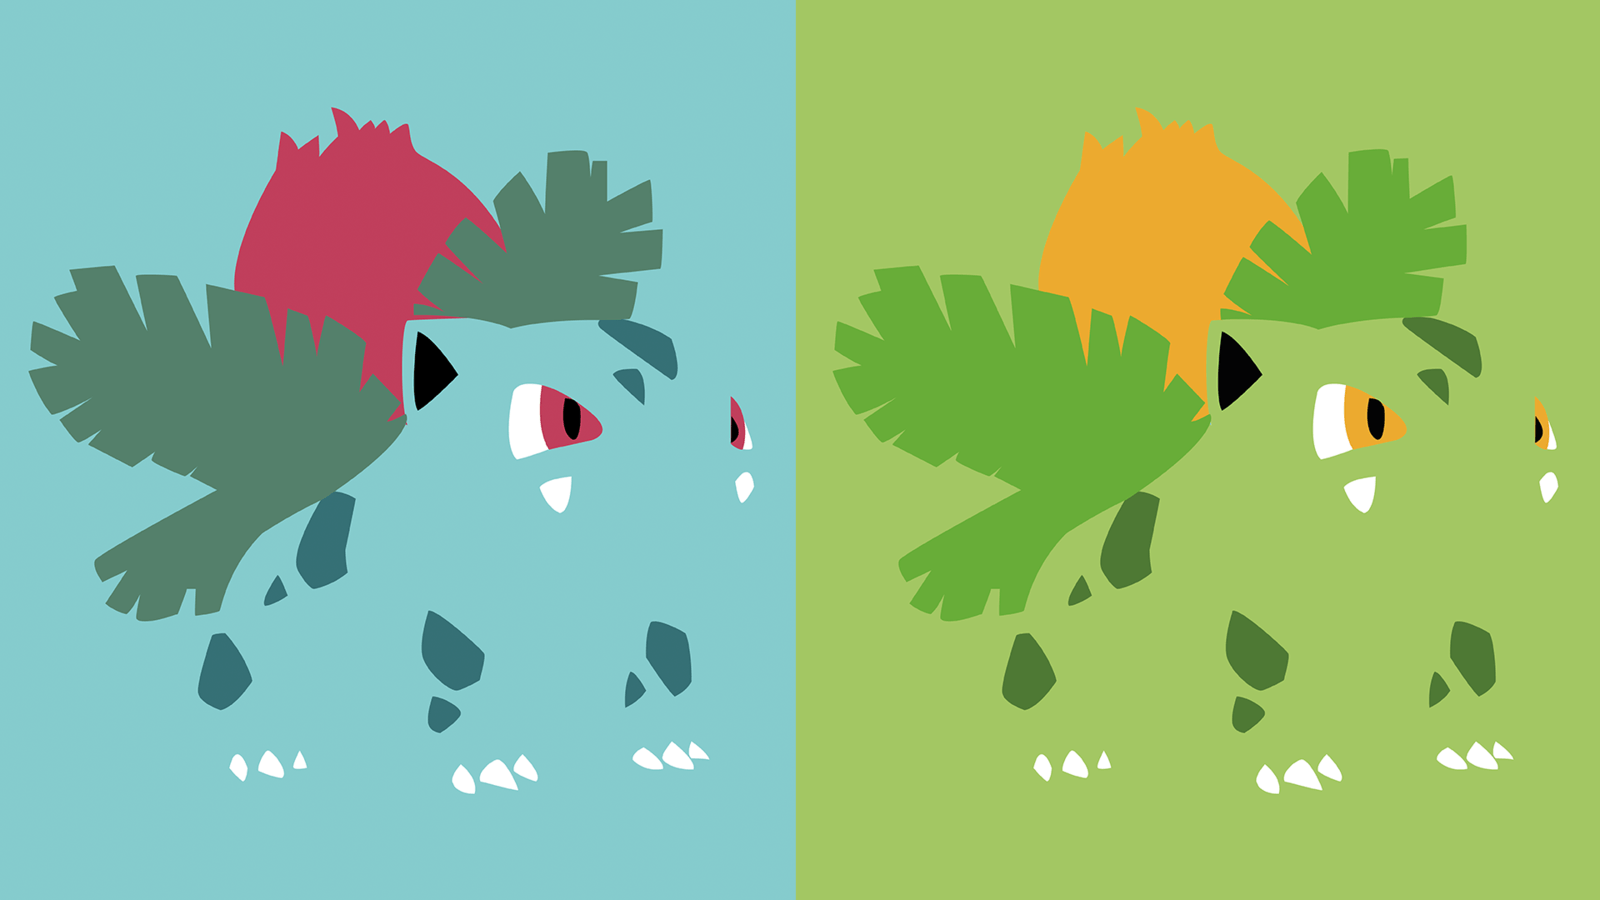 Ivysaur Minimalist Wallpapers by AeolusDesign